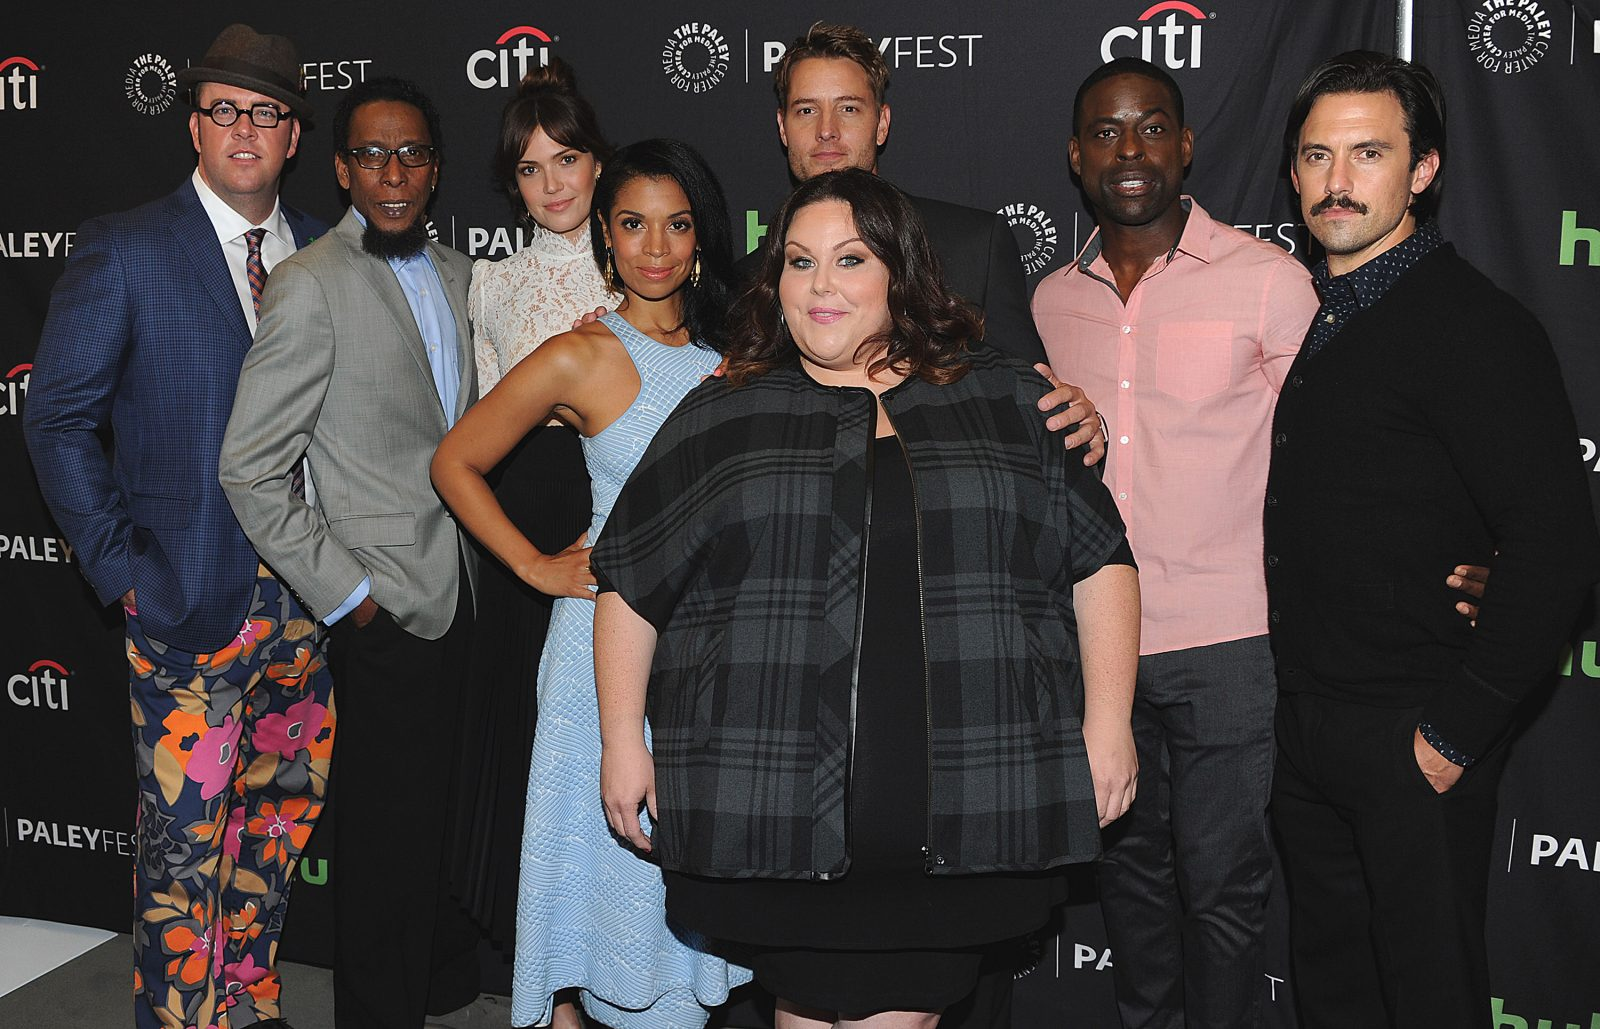 The cast of 'This is Us' appeared at 2016 PaleyFest Fall TV Previews in September. The show has been a ratings hit in WNY.  (Scott Kirkland/PictureGroup/Sipa USA/TNS)